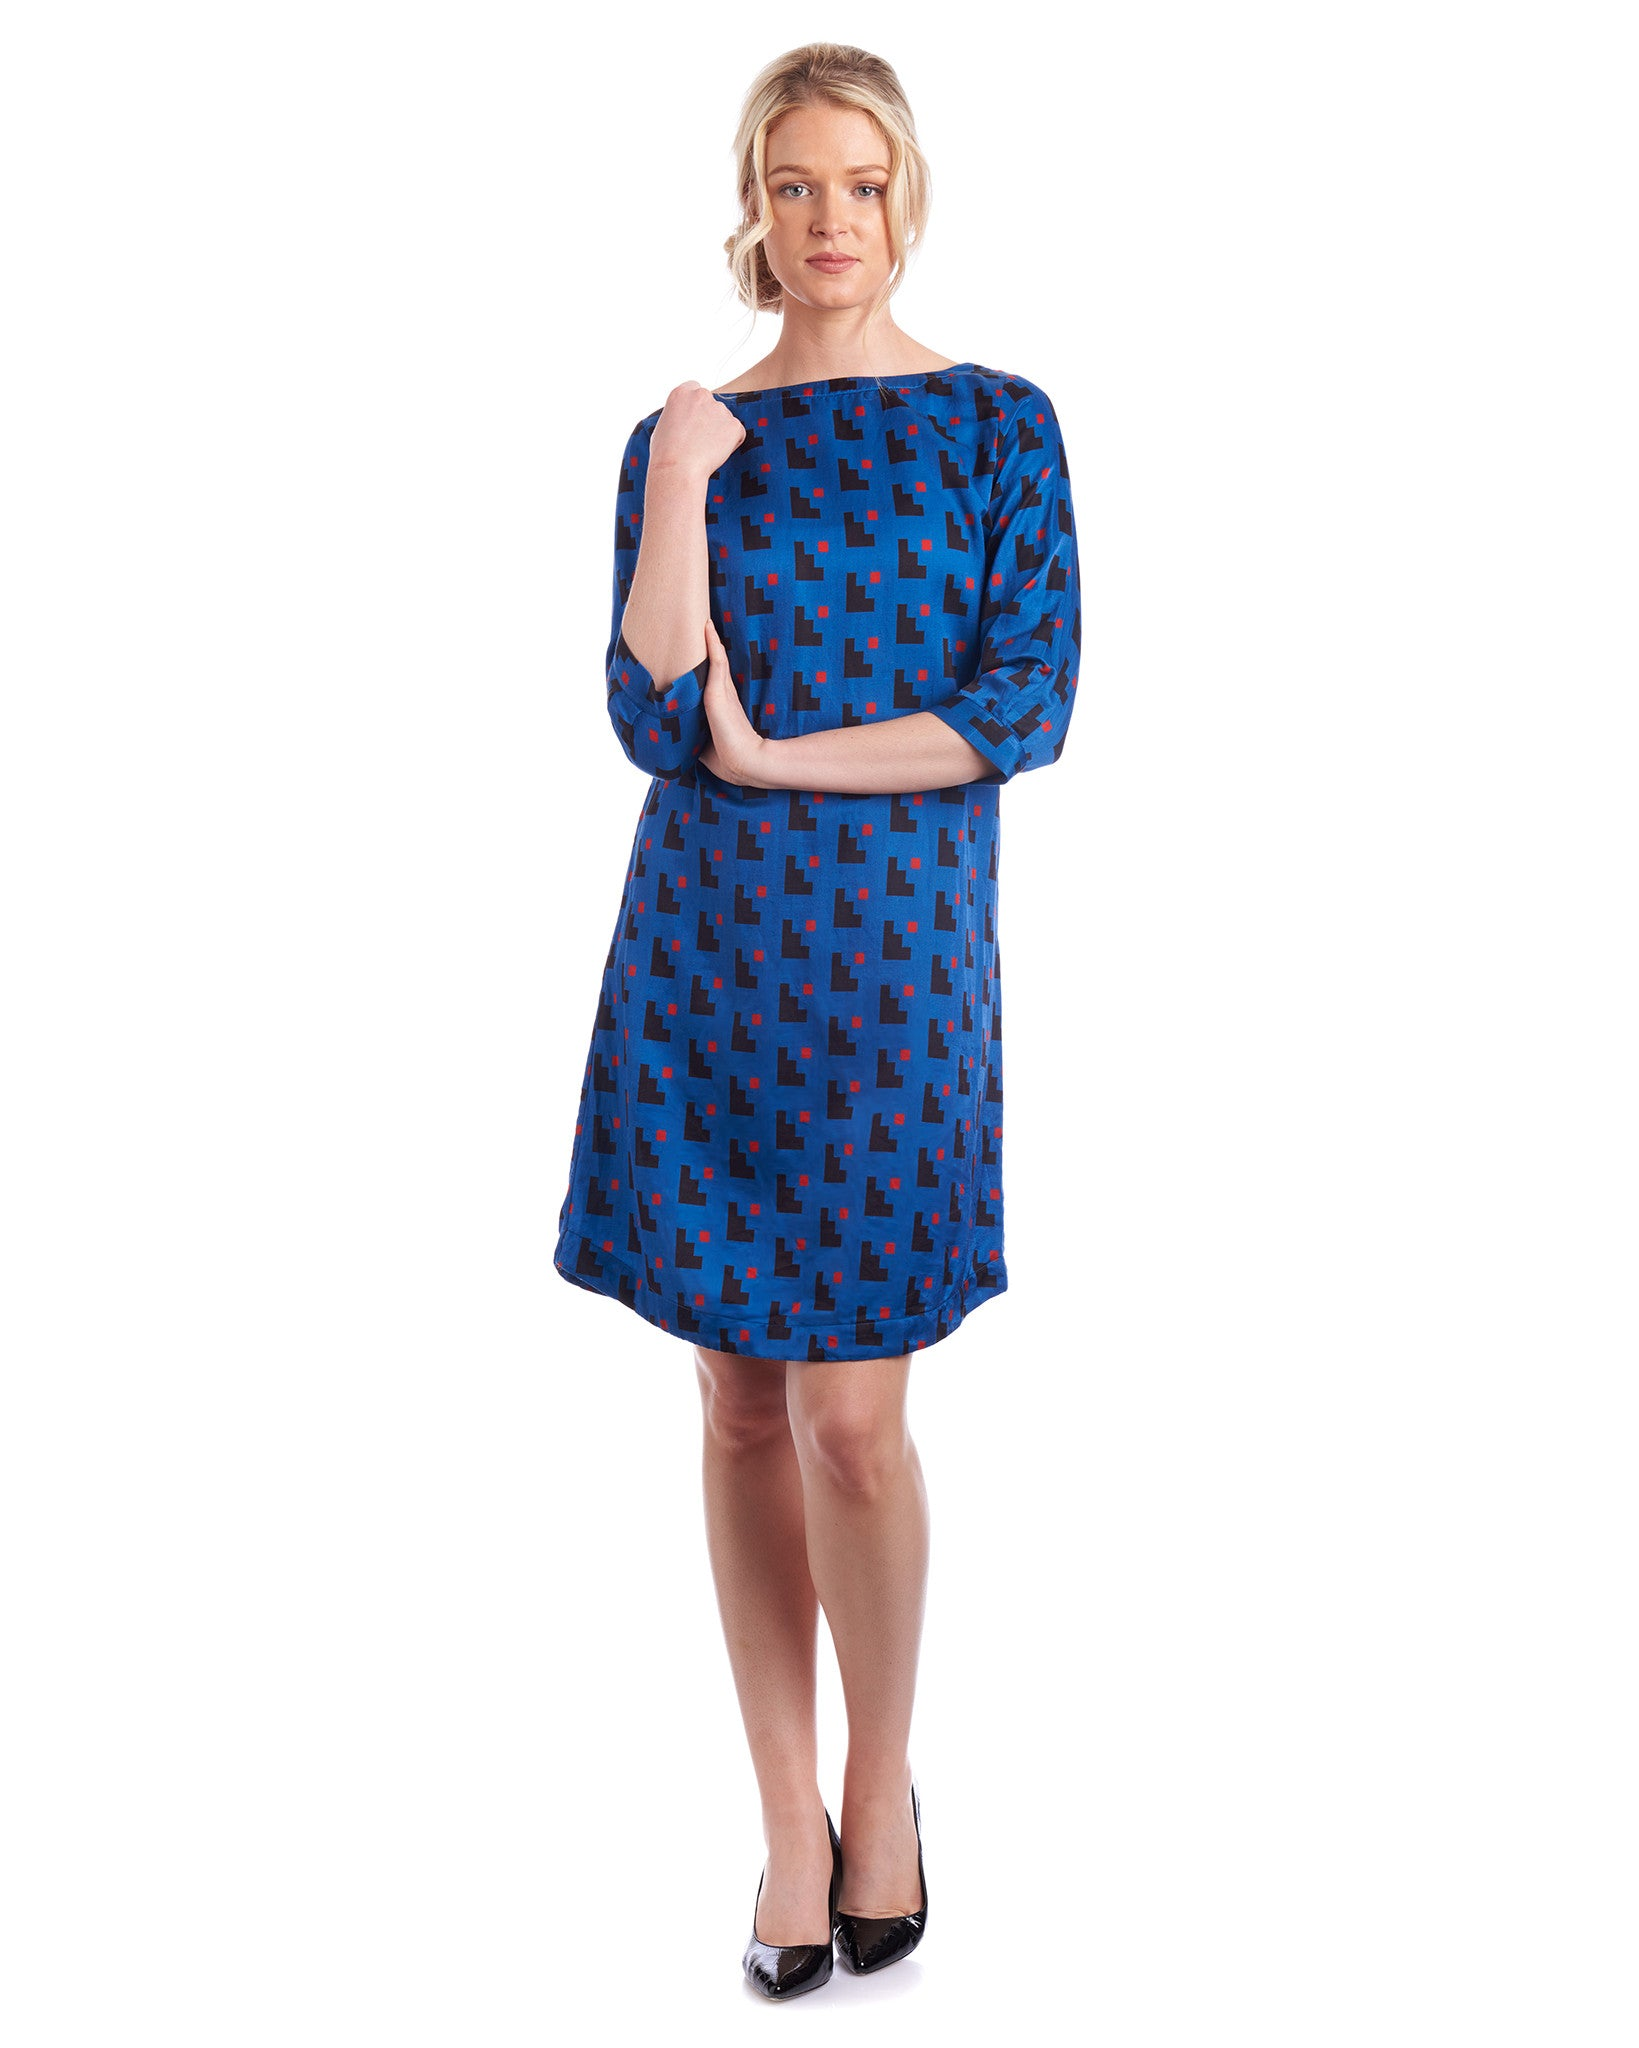 Tahlo silk dress with prints are the new wardrobe staple